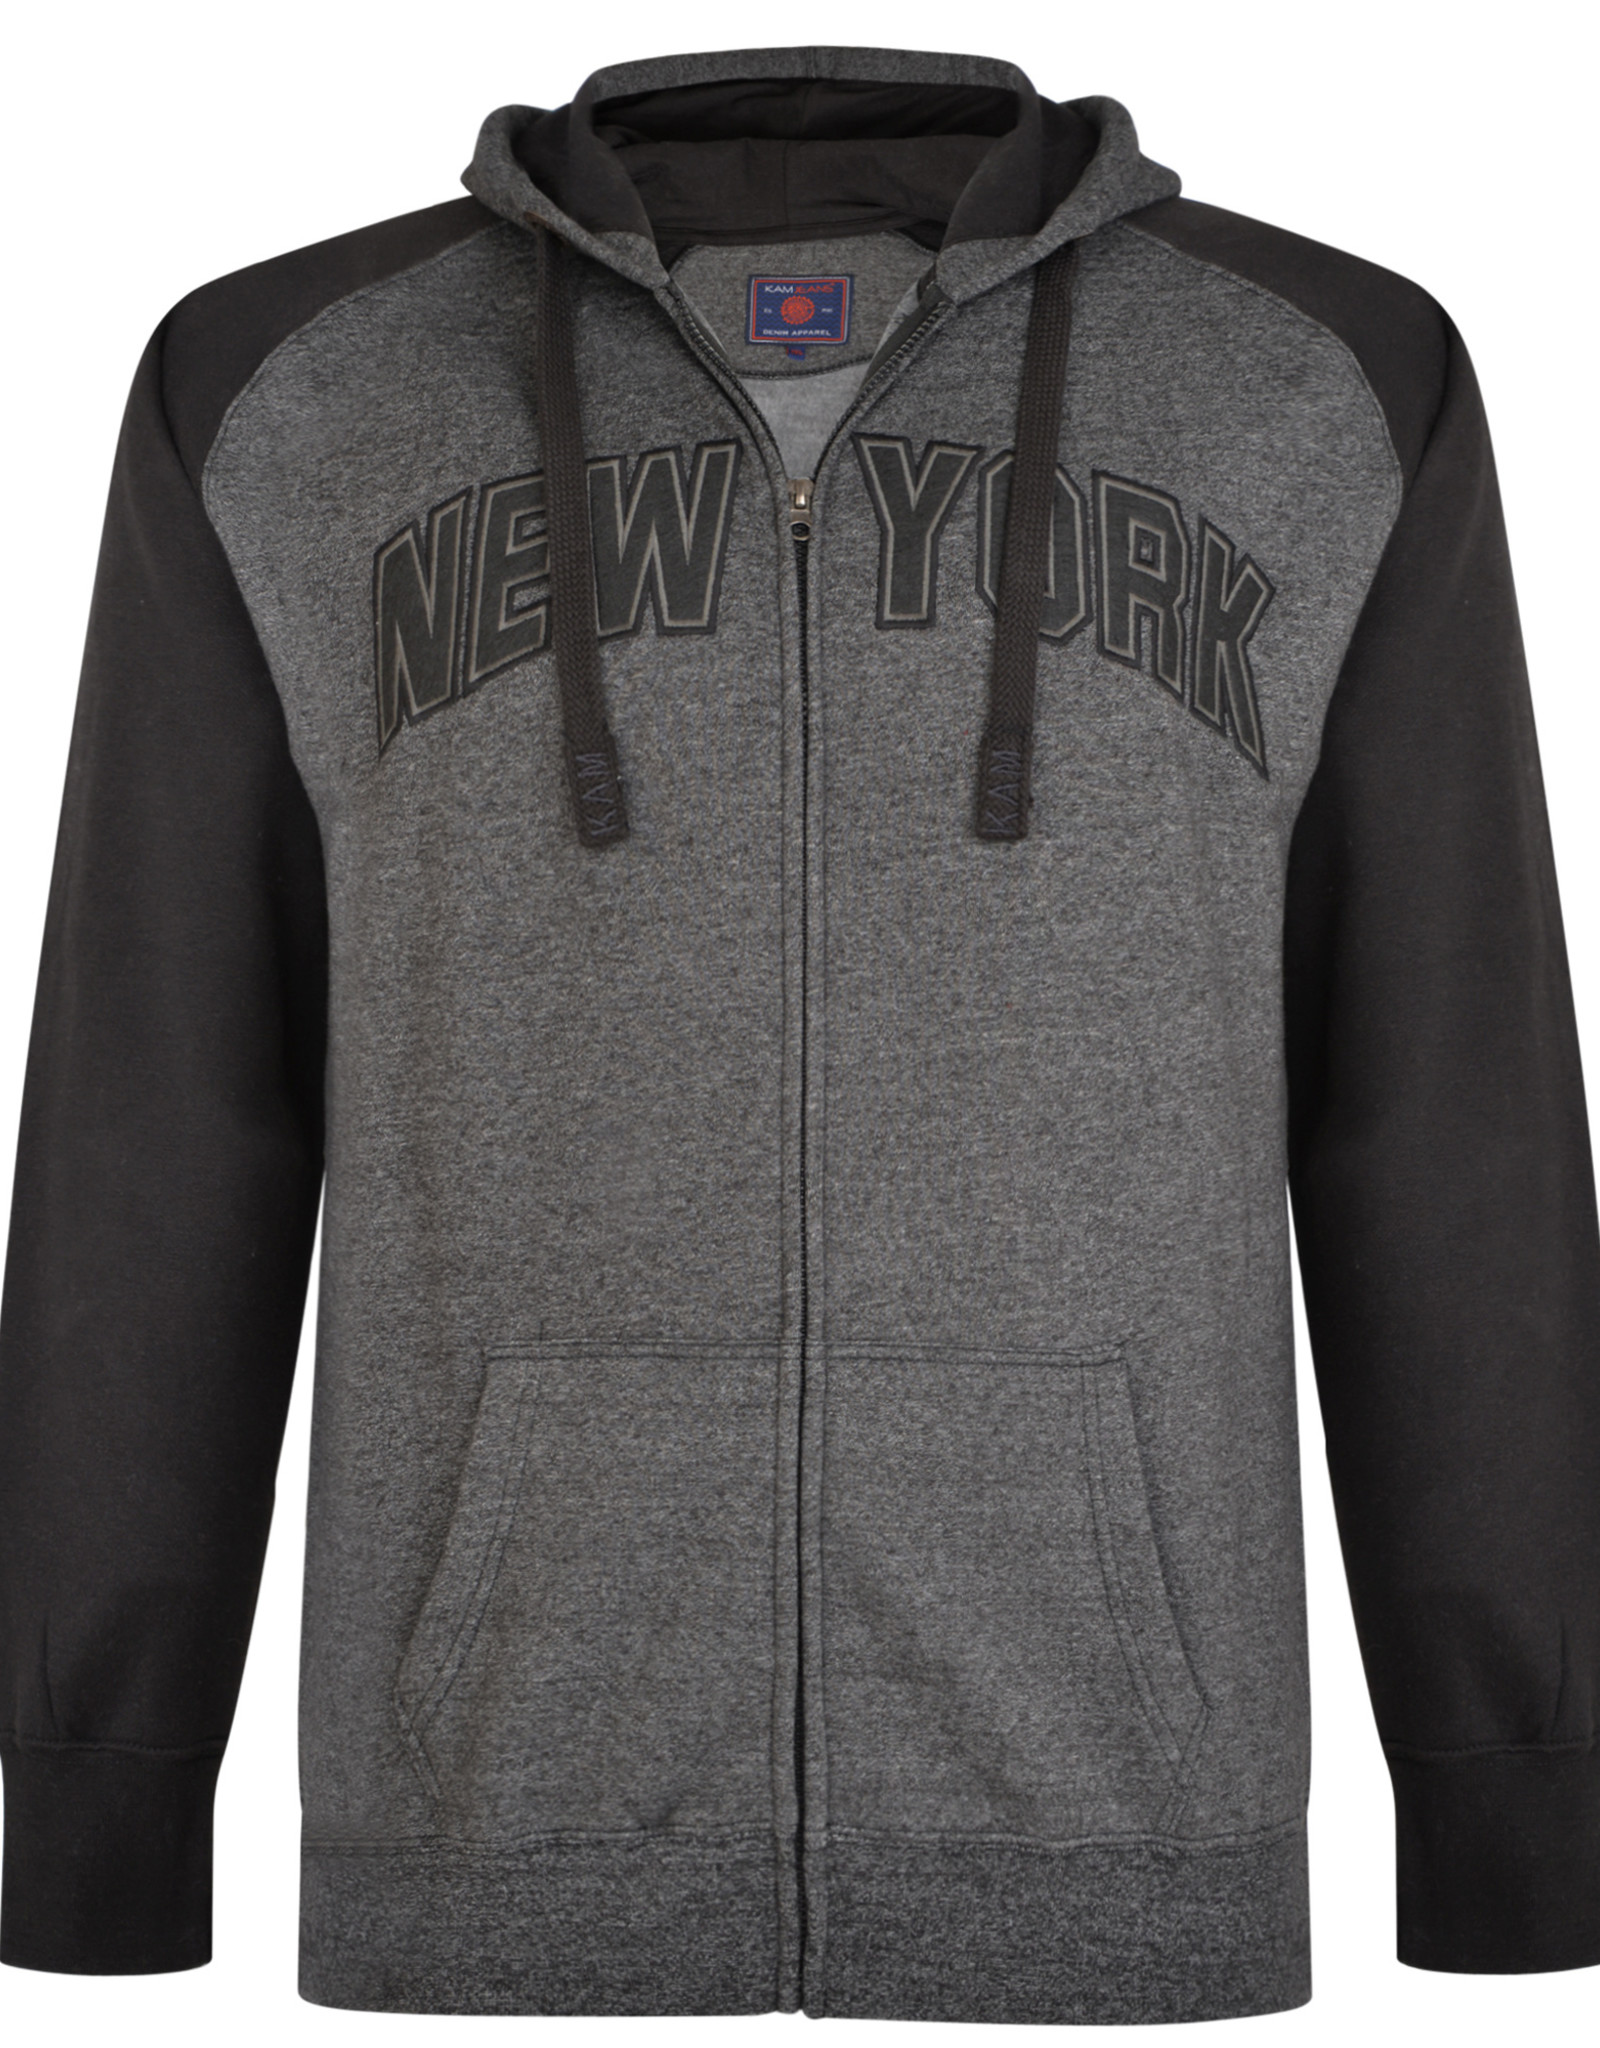 Kam Jeans SWEATVEST met borduring 'New York' antraciet